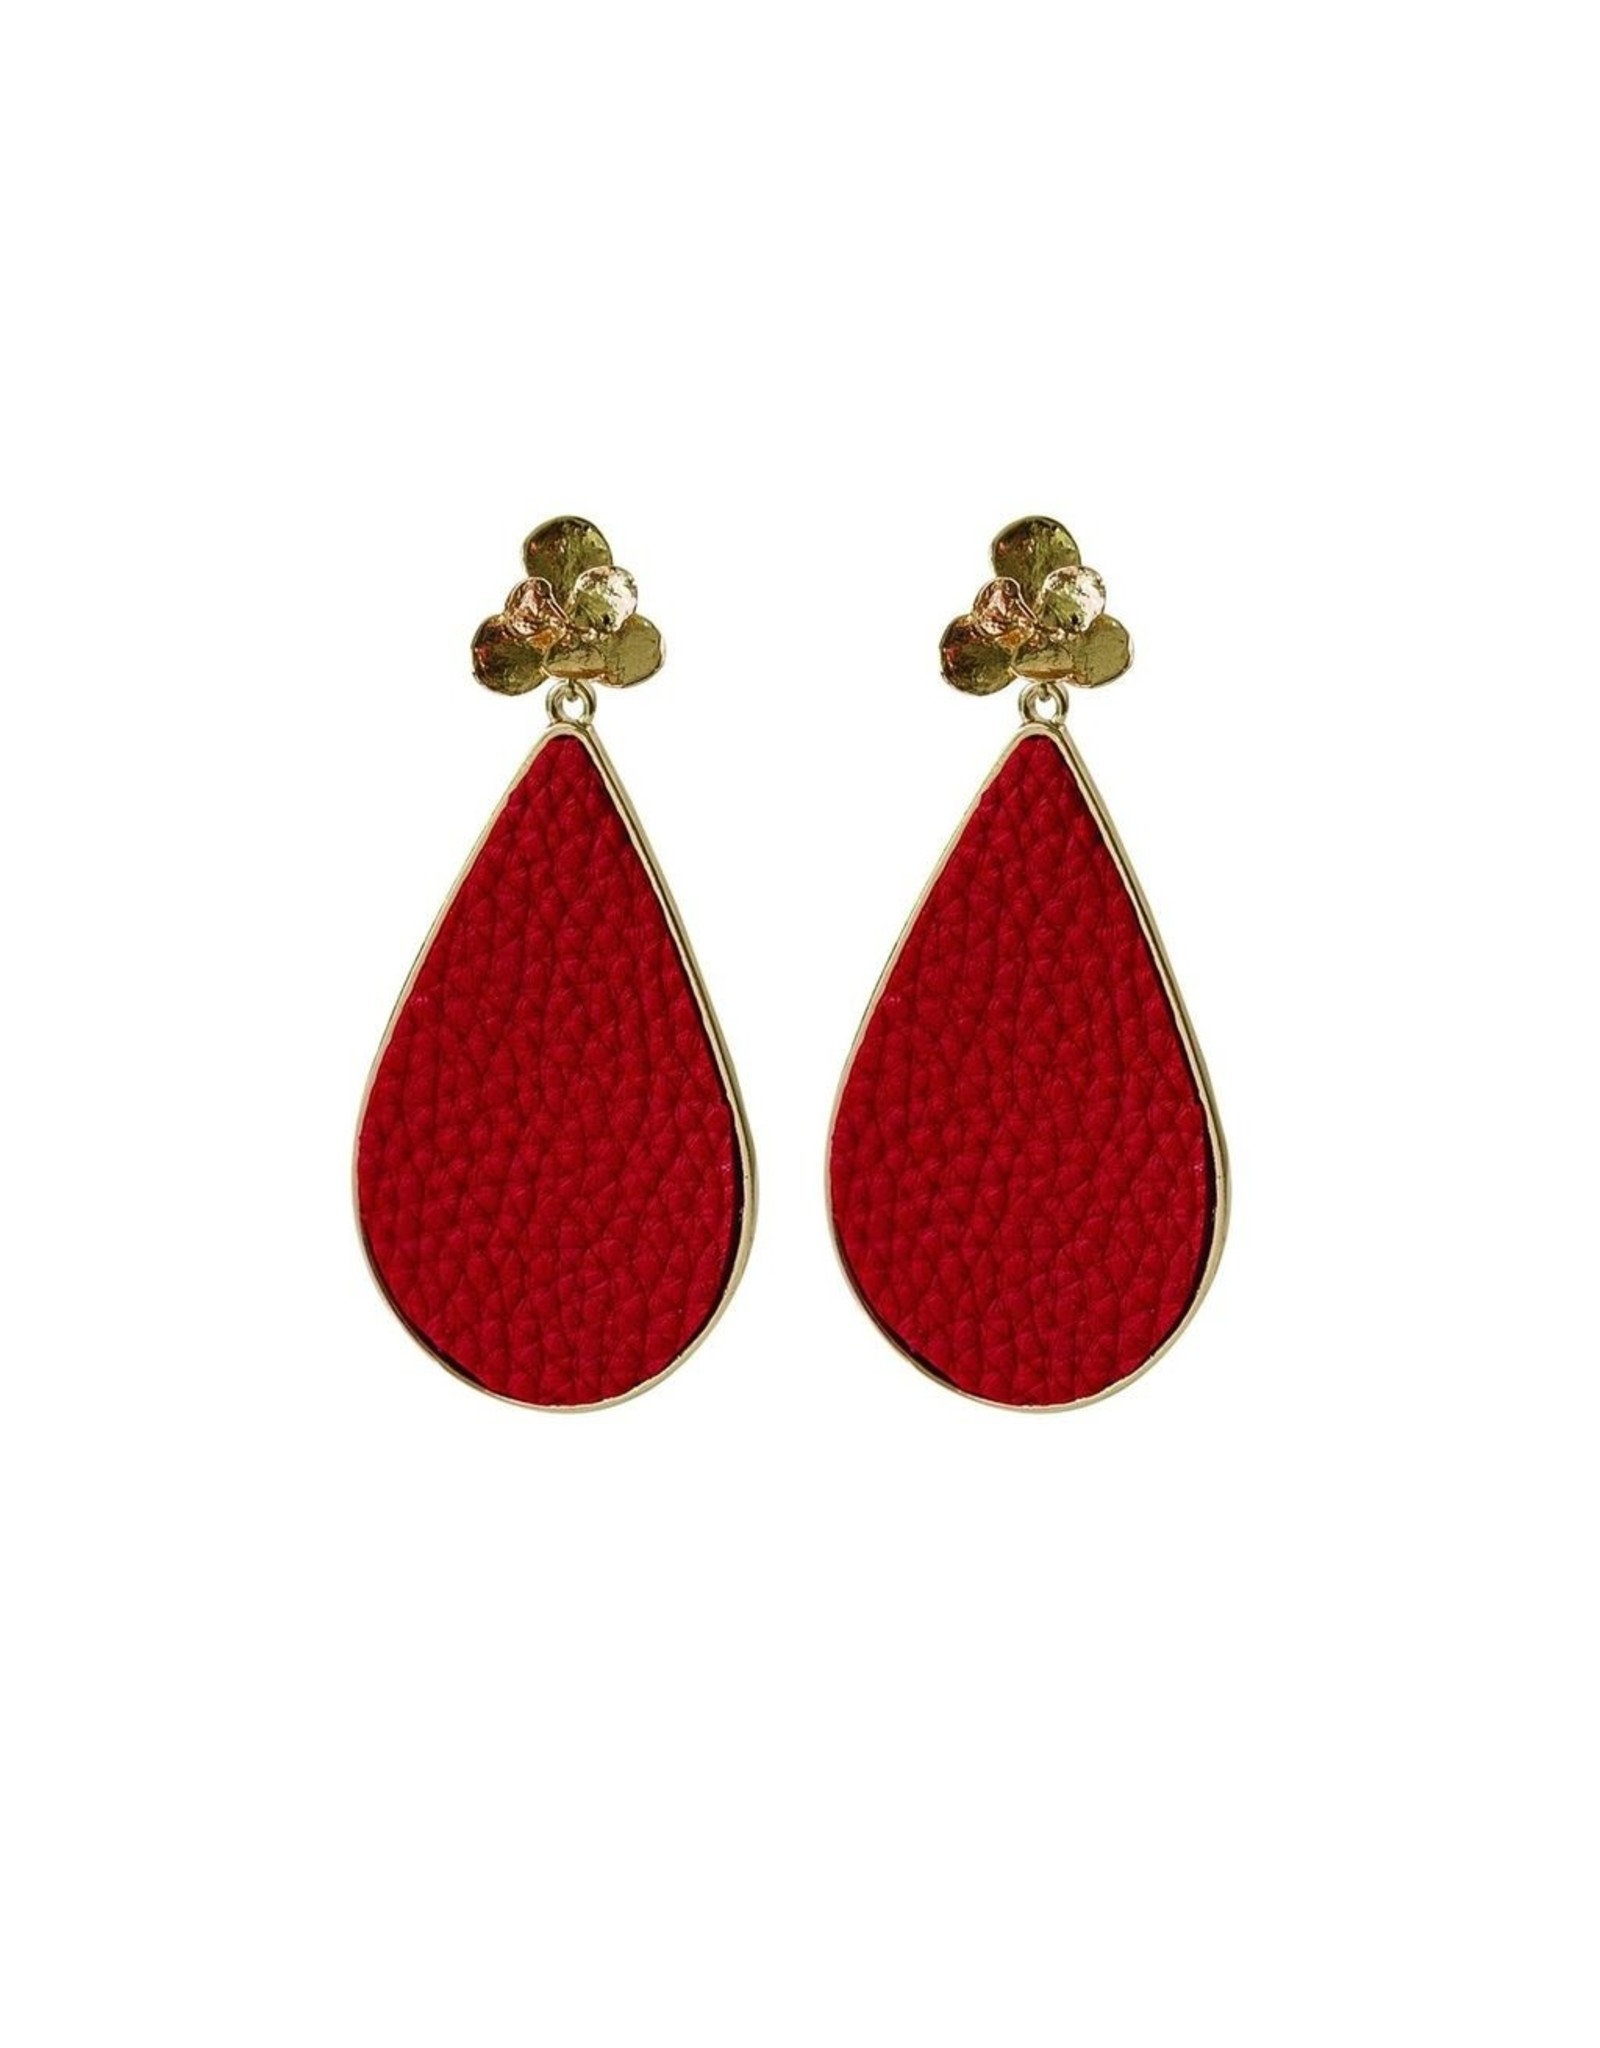 Mary Square Miami Red Earrings